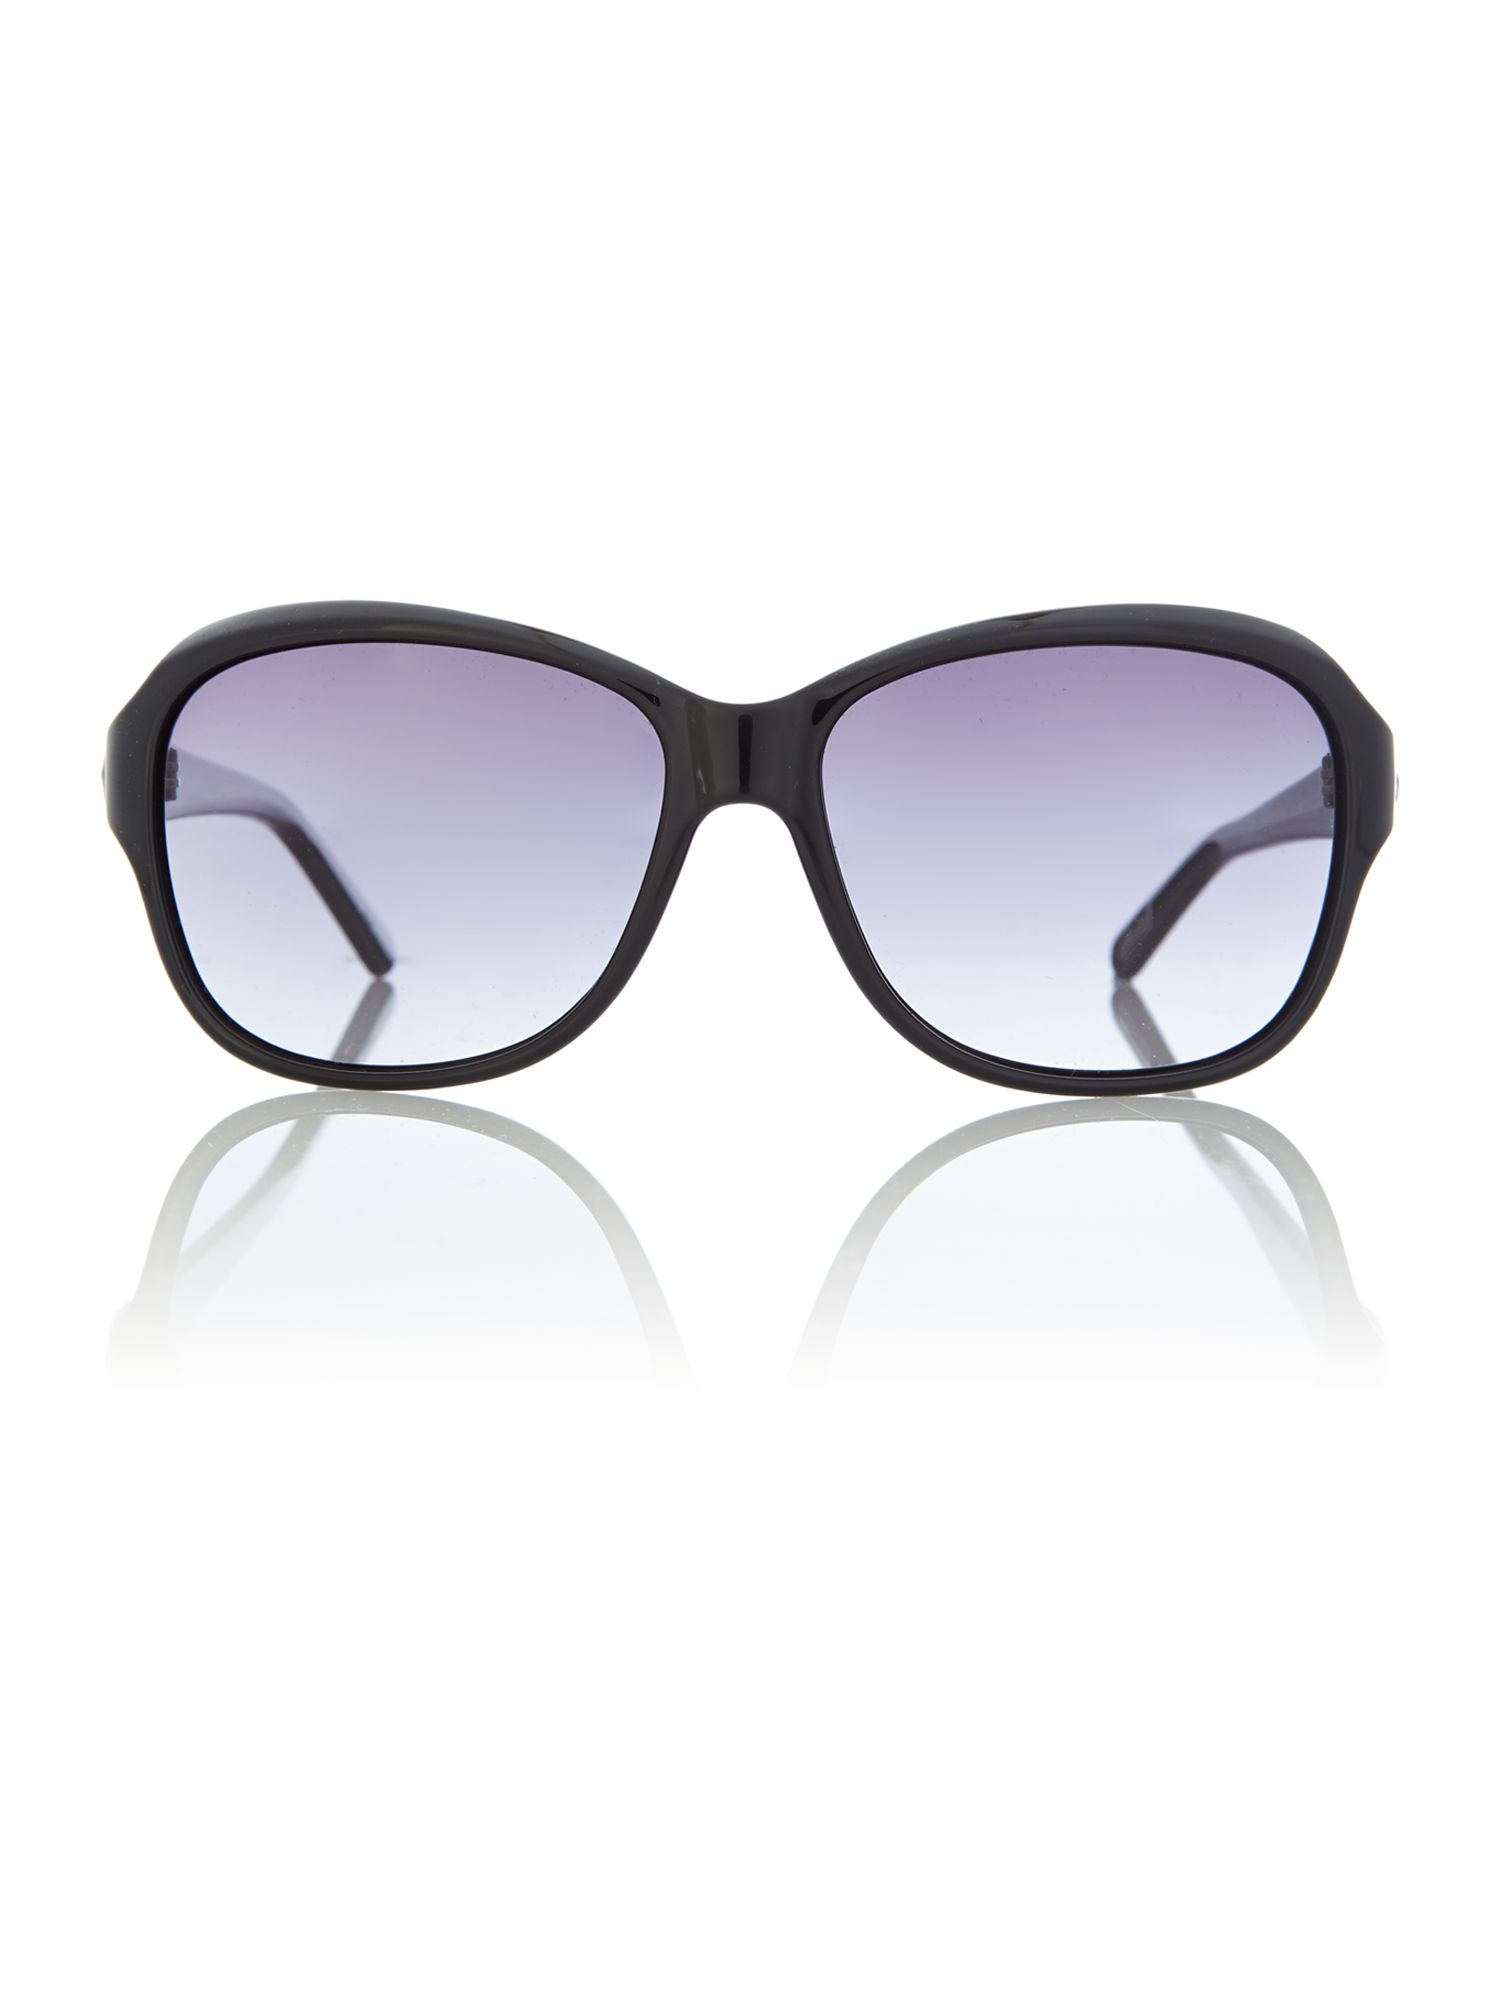 Tb1317 ladies square sunglasses